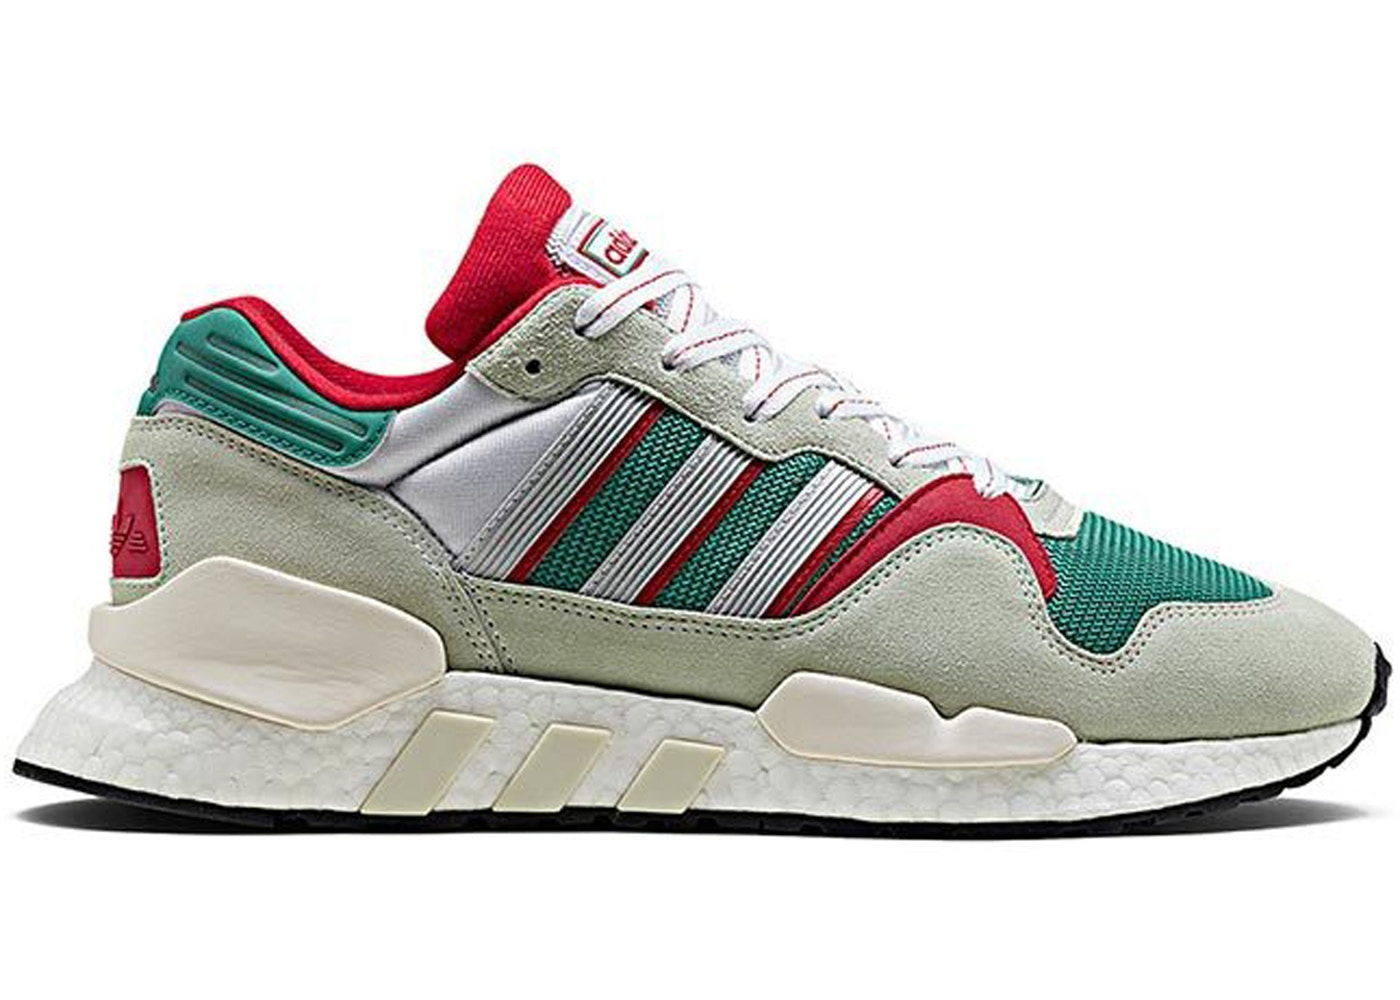 quality design 93490 9dbda Adidas ZX 930 X EQT Never Made Pack